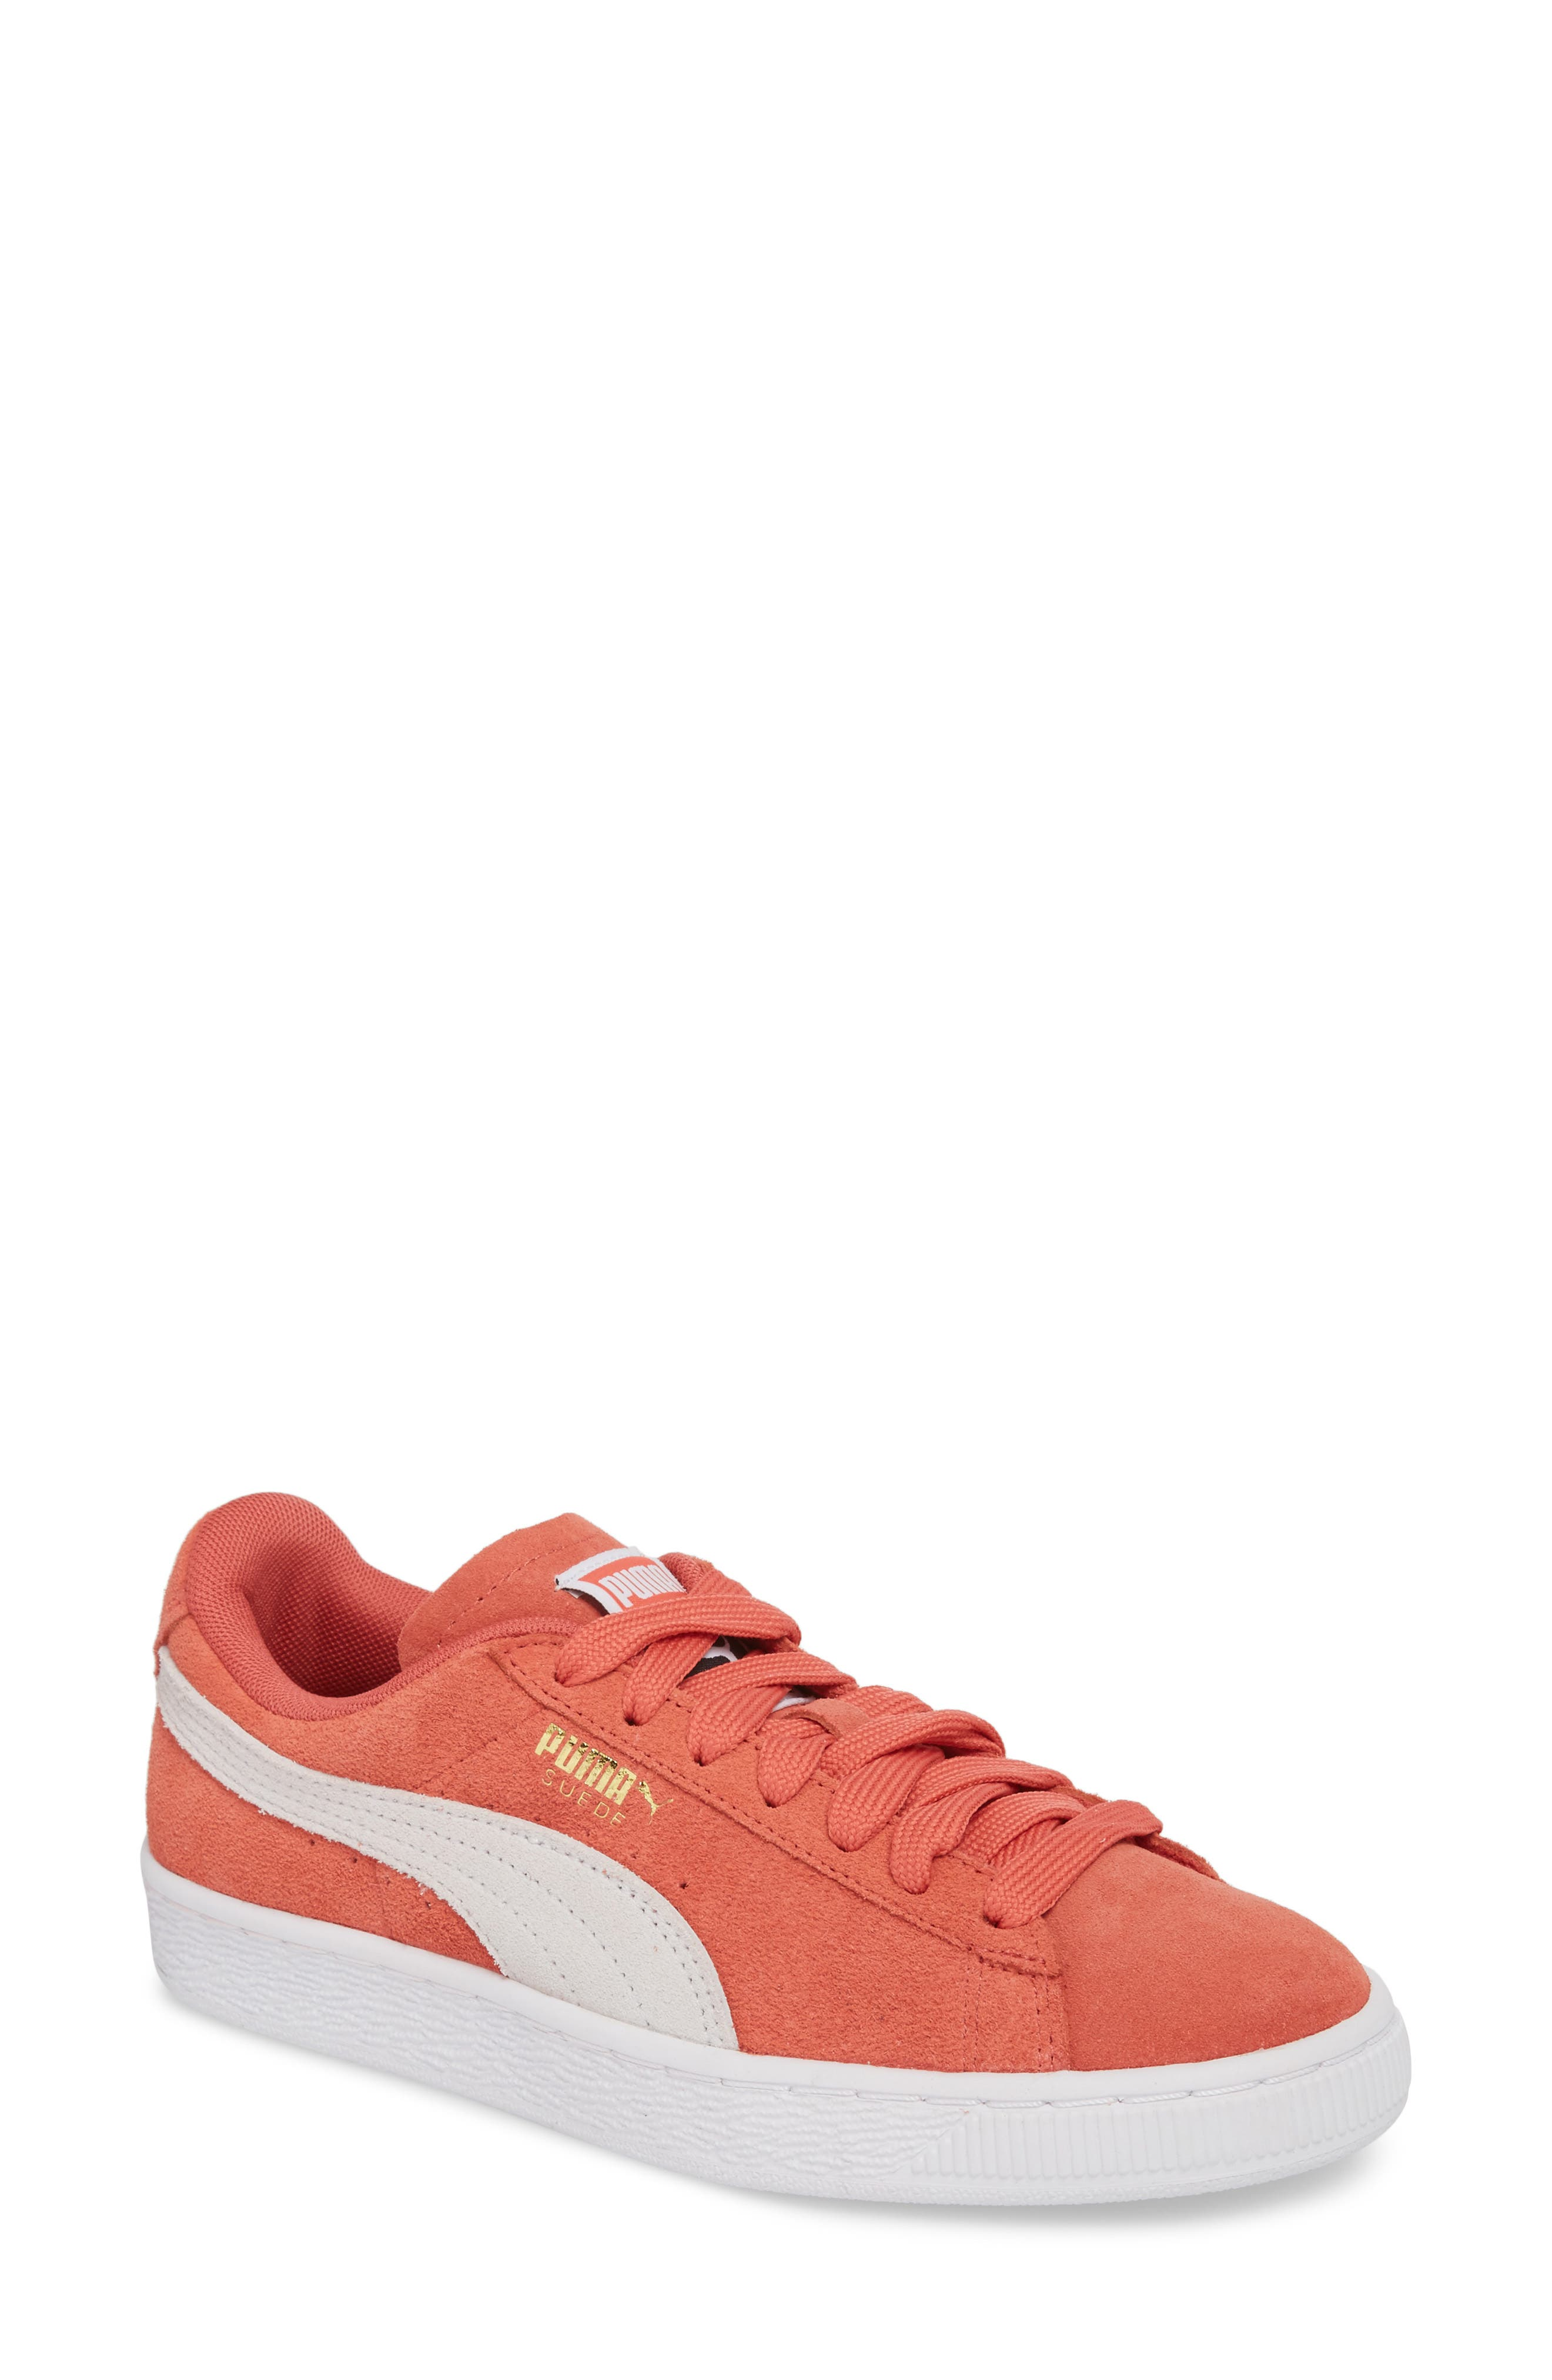 Suede Sneaker,                         Main,                         color, Spiced Coral/ Puma White